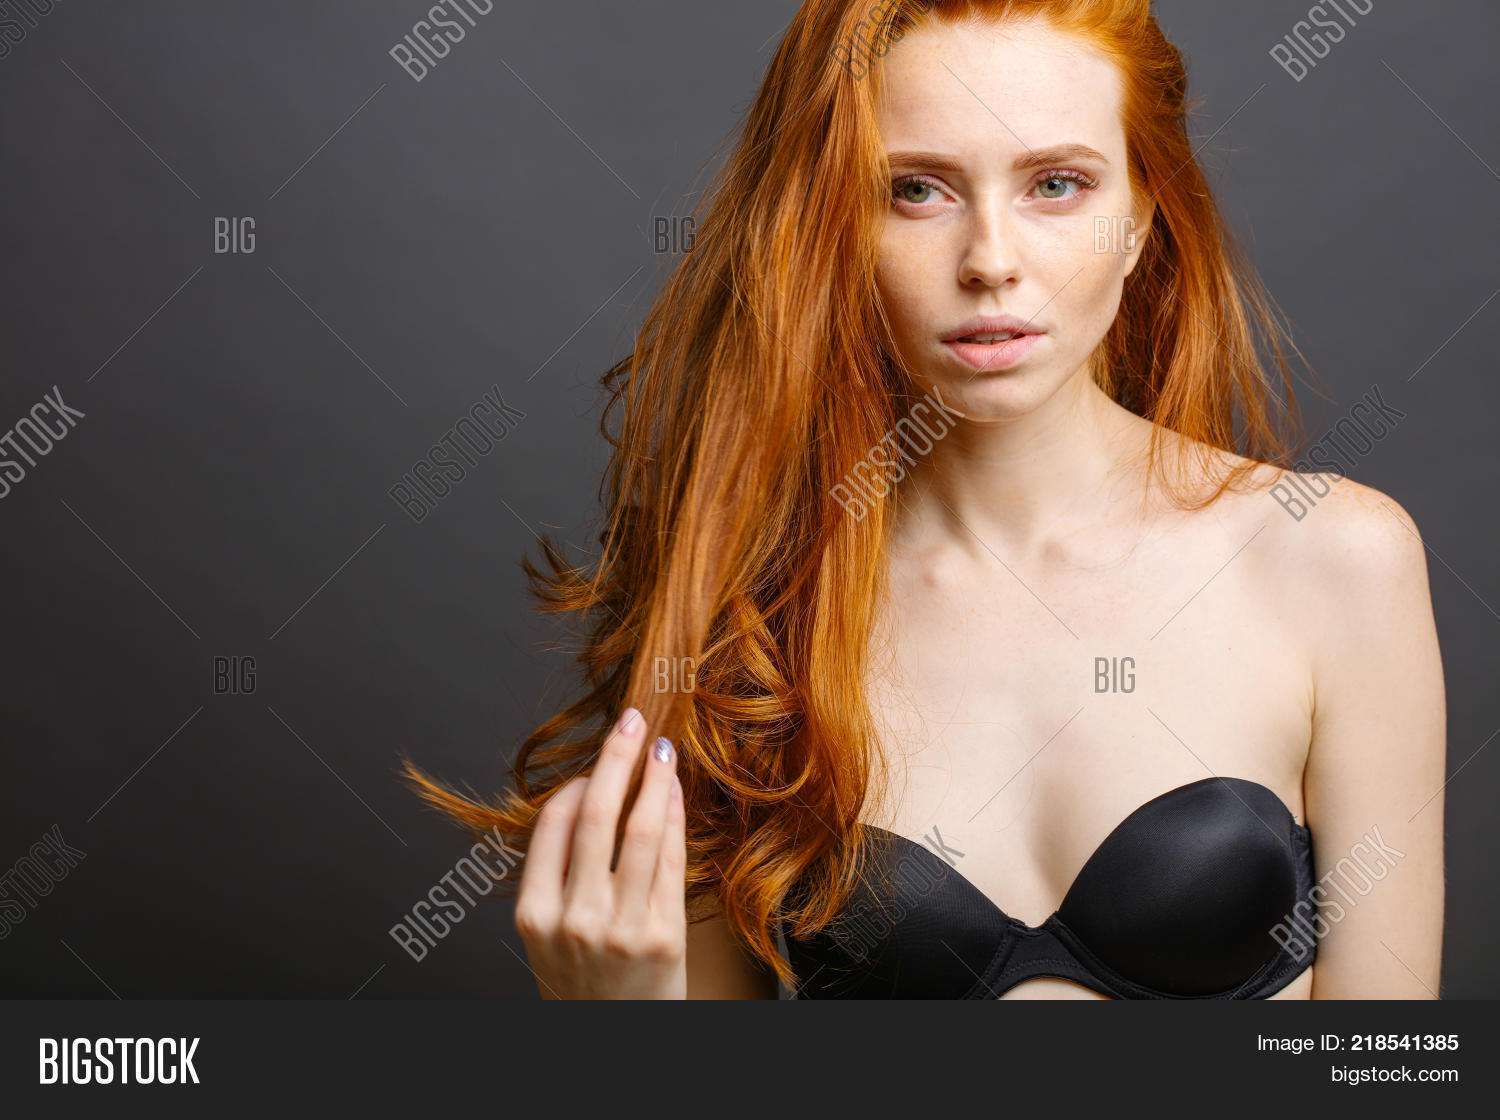 Porn Full HD completely free beautiful nude redhead women